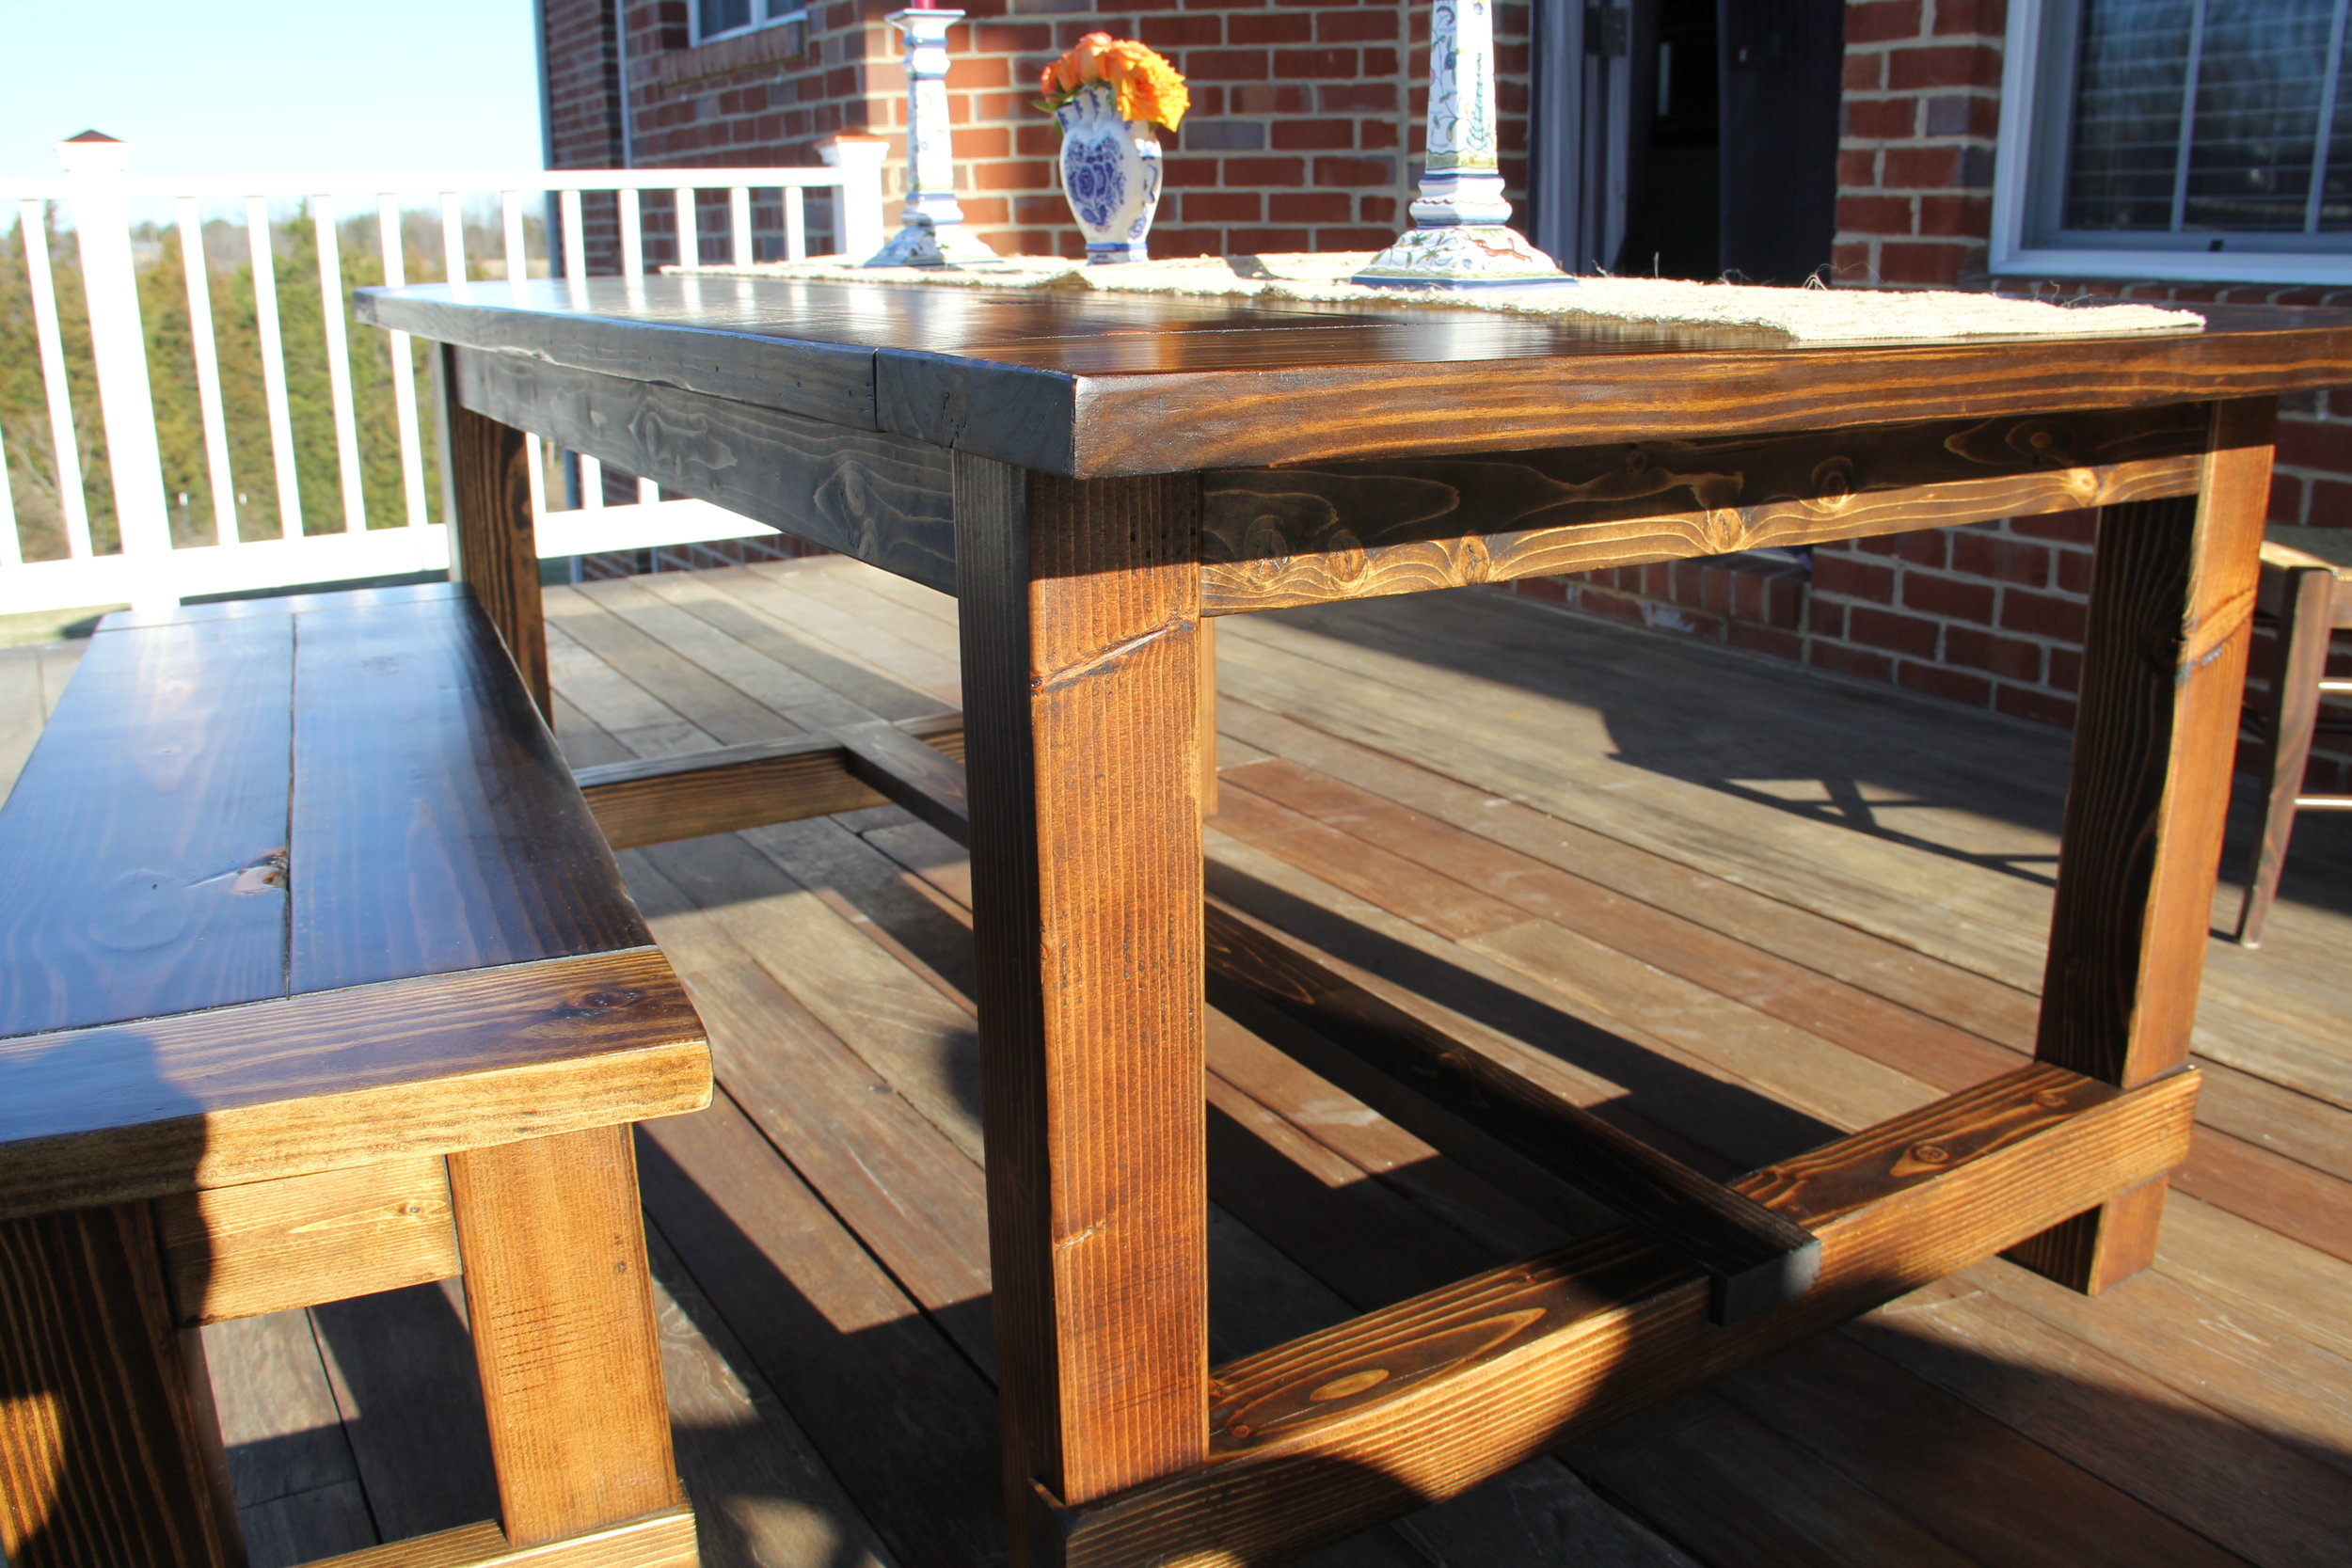 6 Ft Farmhouse Dining Table & Bench in Pine with Antique Walnut Finish.